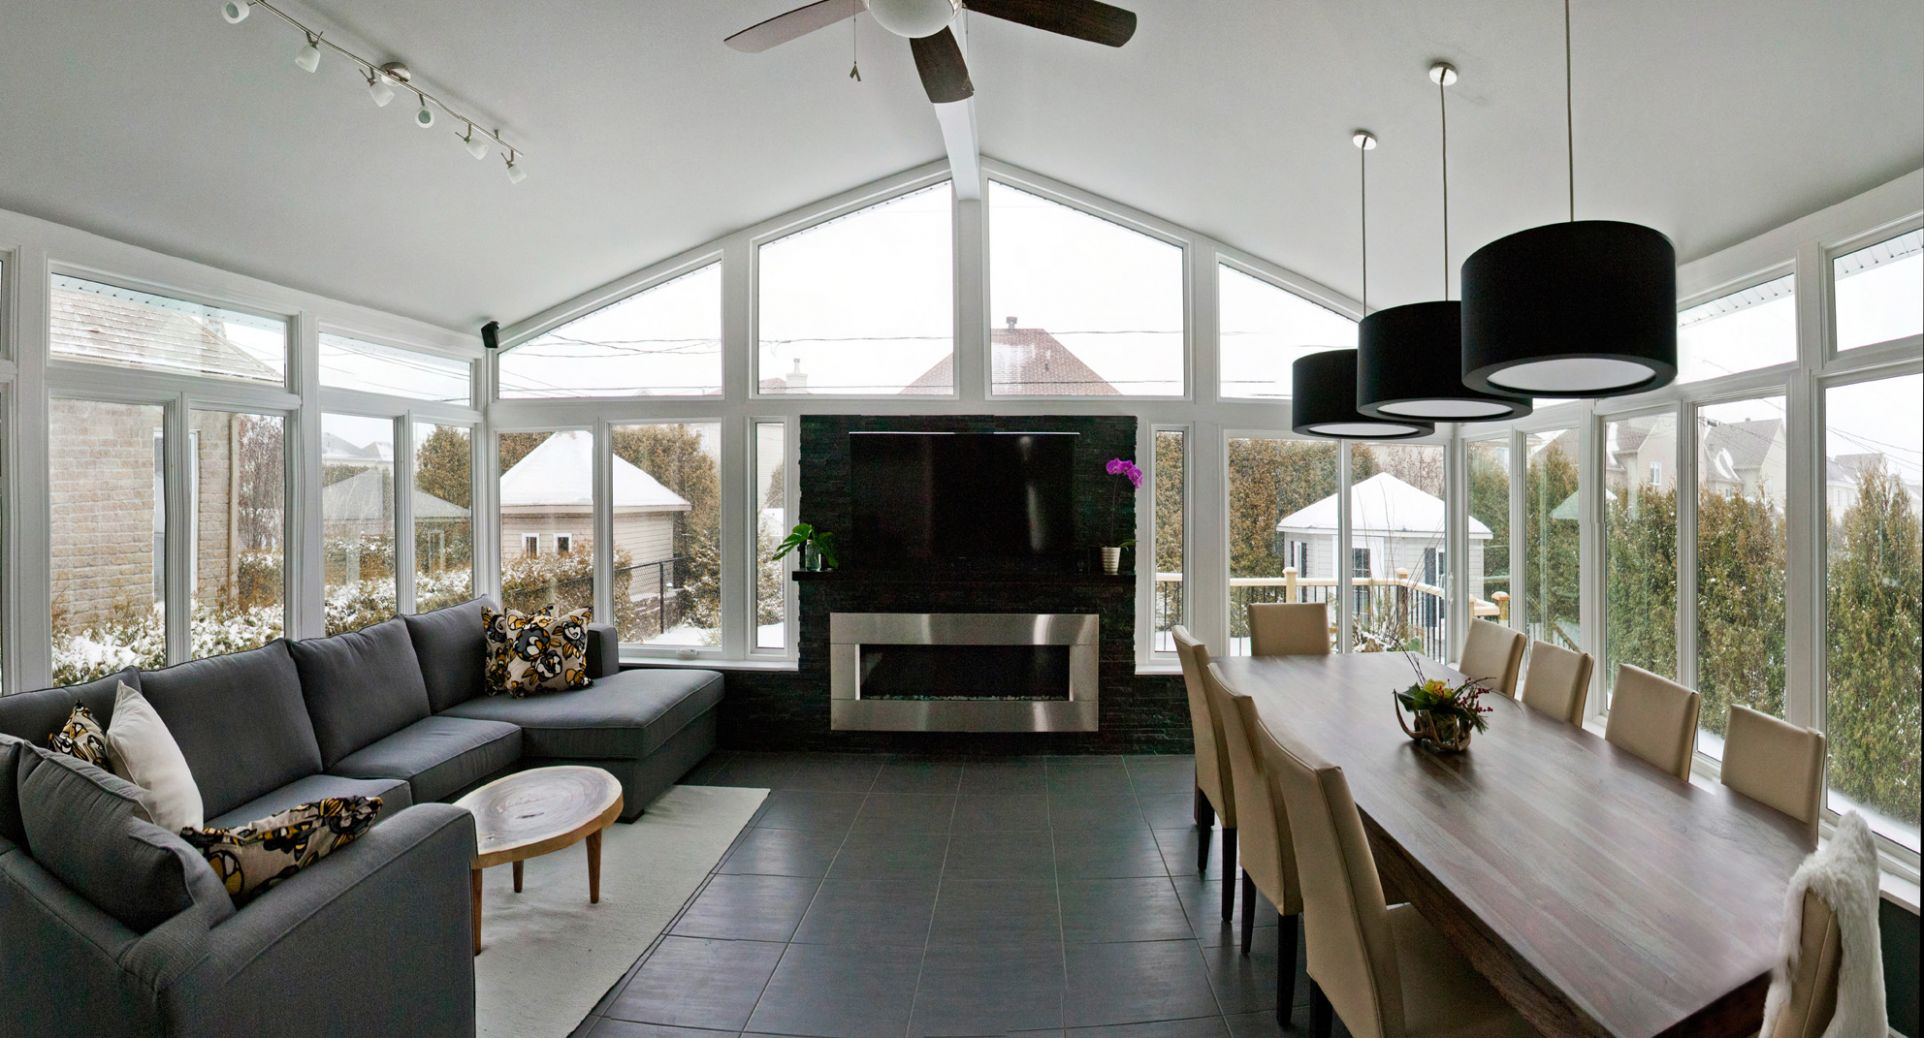 LivingSpace Helps Make a Television Room out of your Sunroom